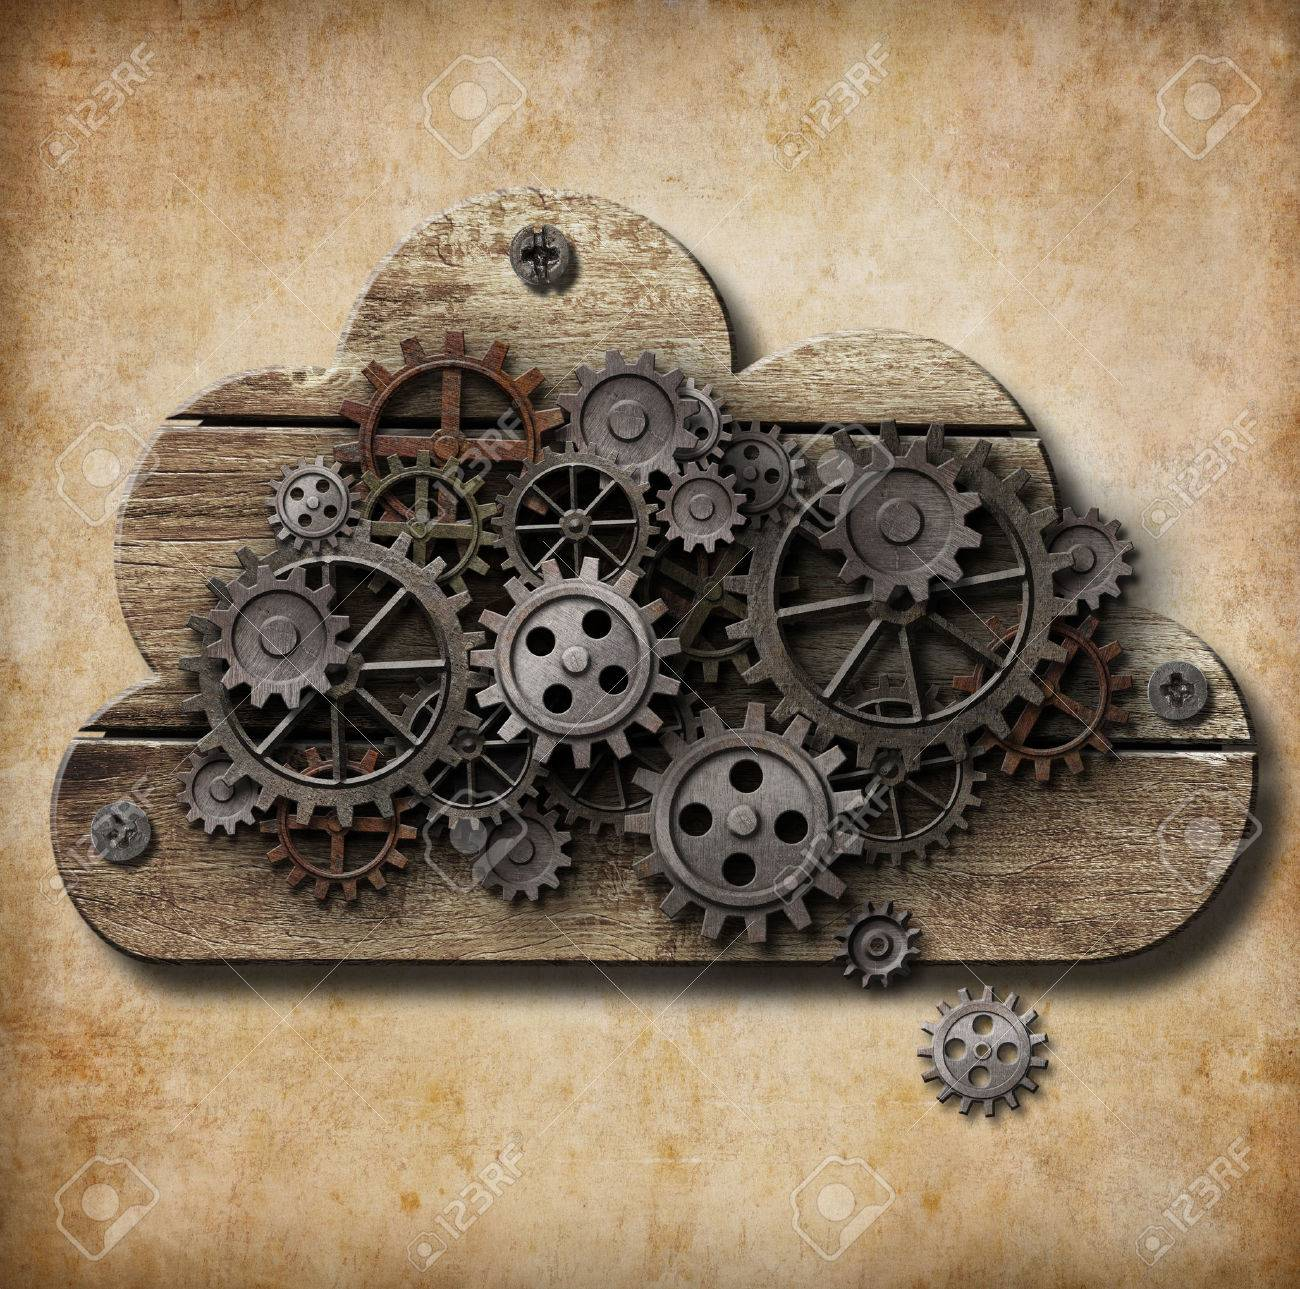 wooden cloud with rusty gears attached to grunge background Stock Photo - 22861194